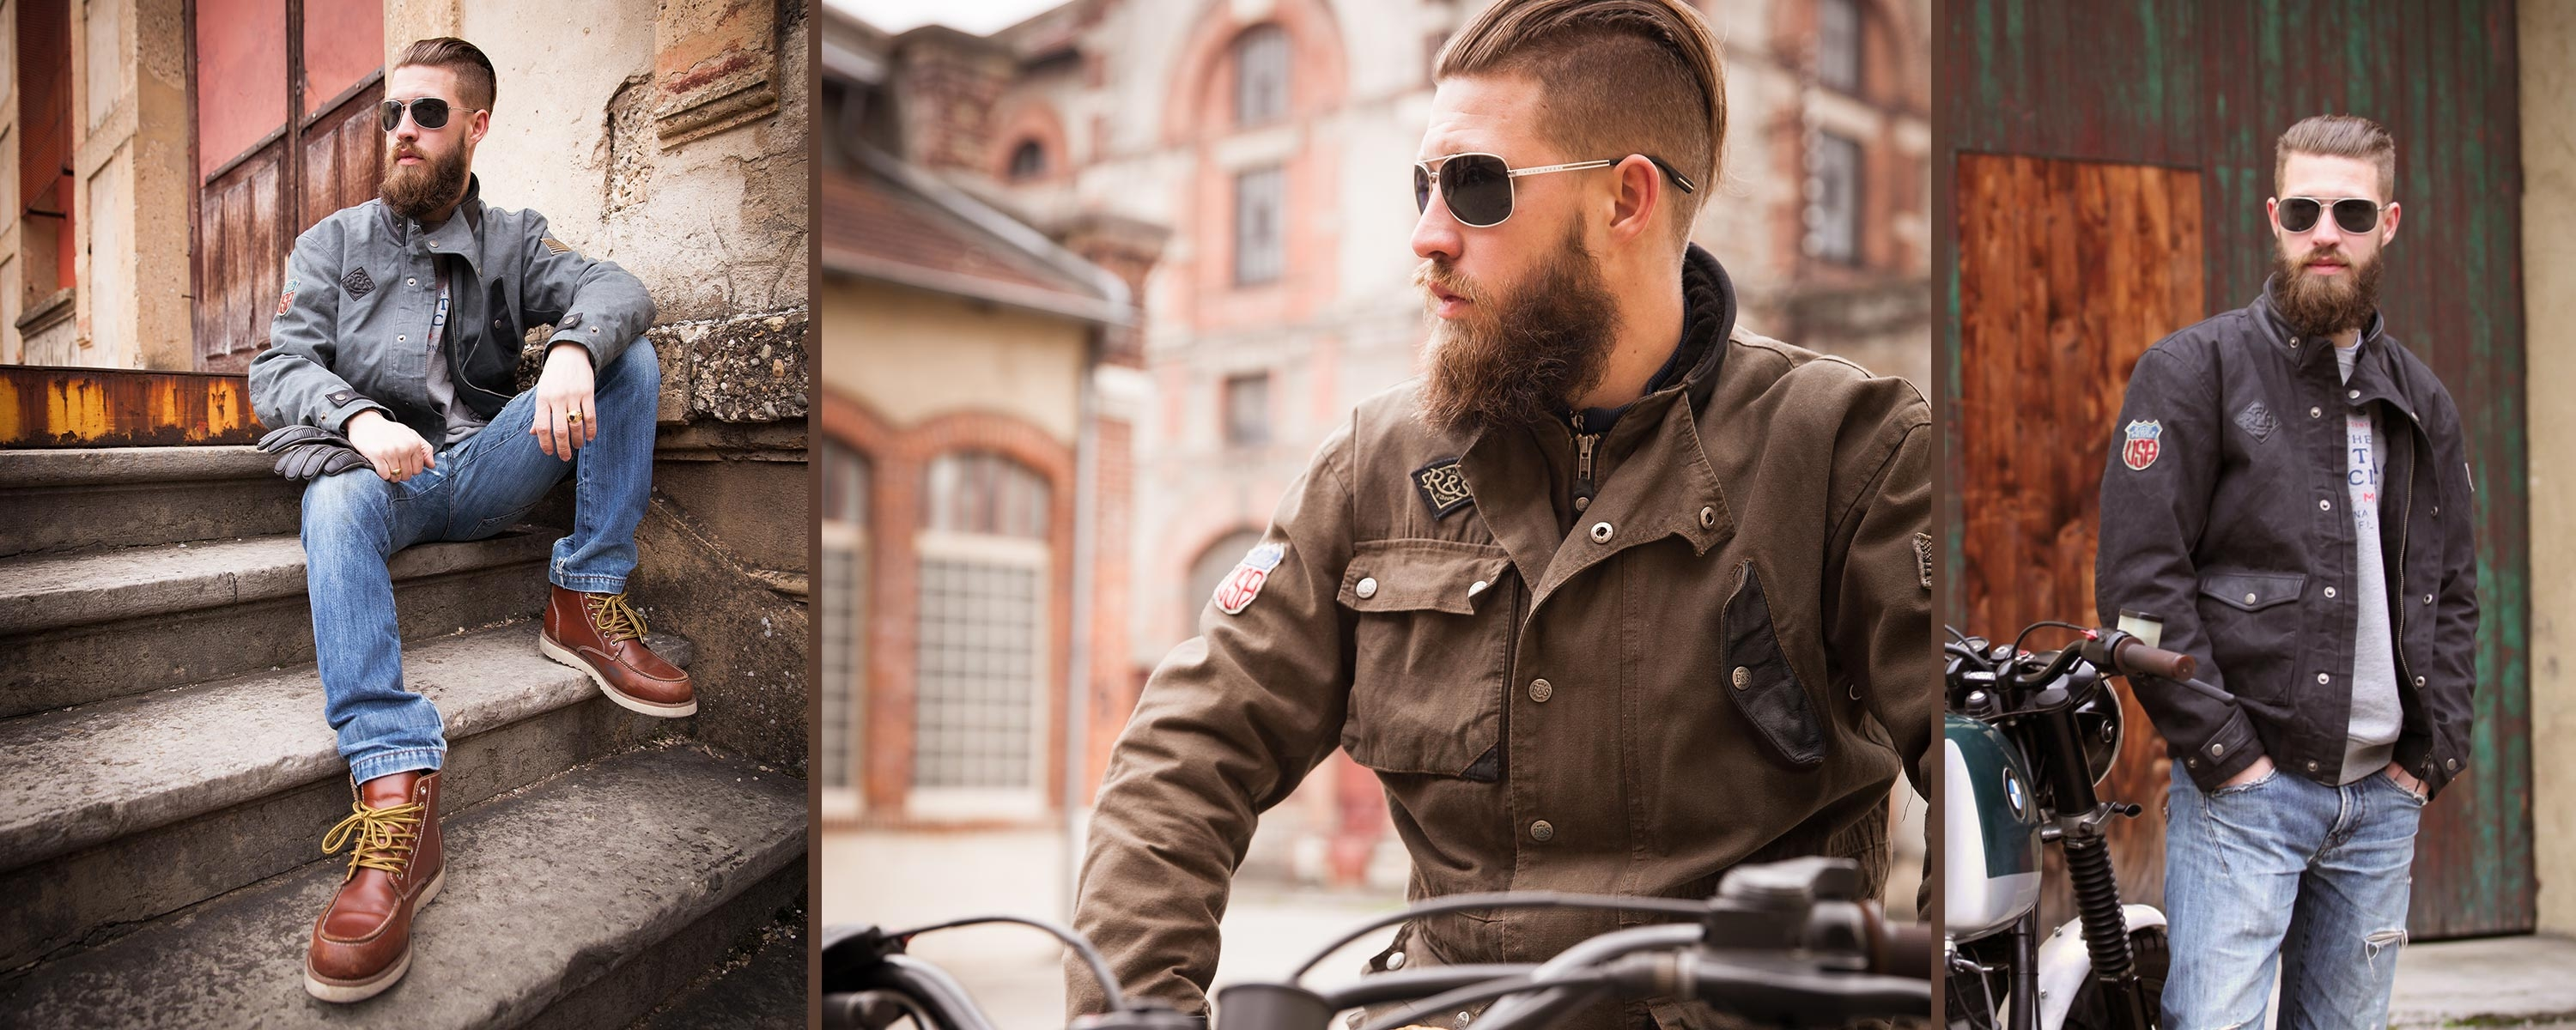 The Runaway Jacket by RIDE&SONS